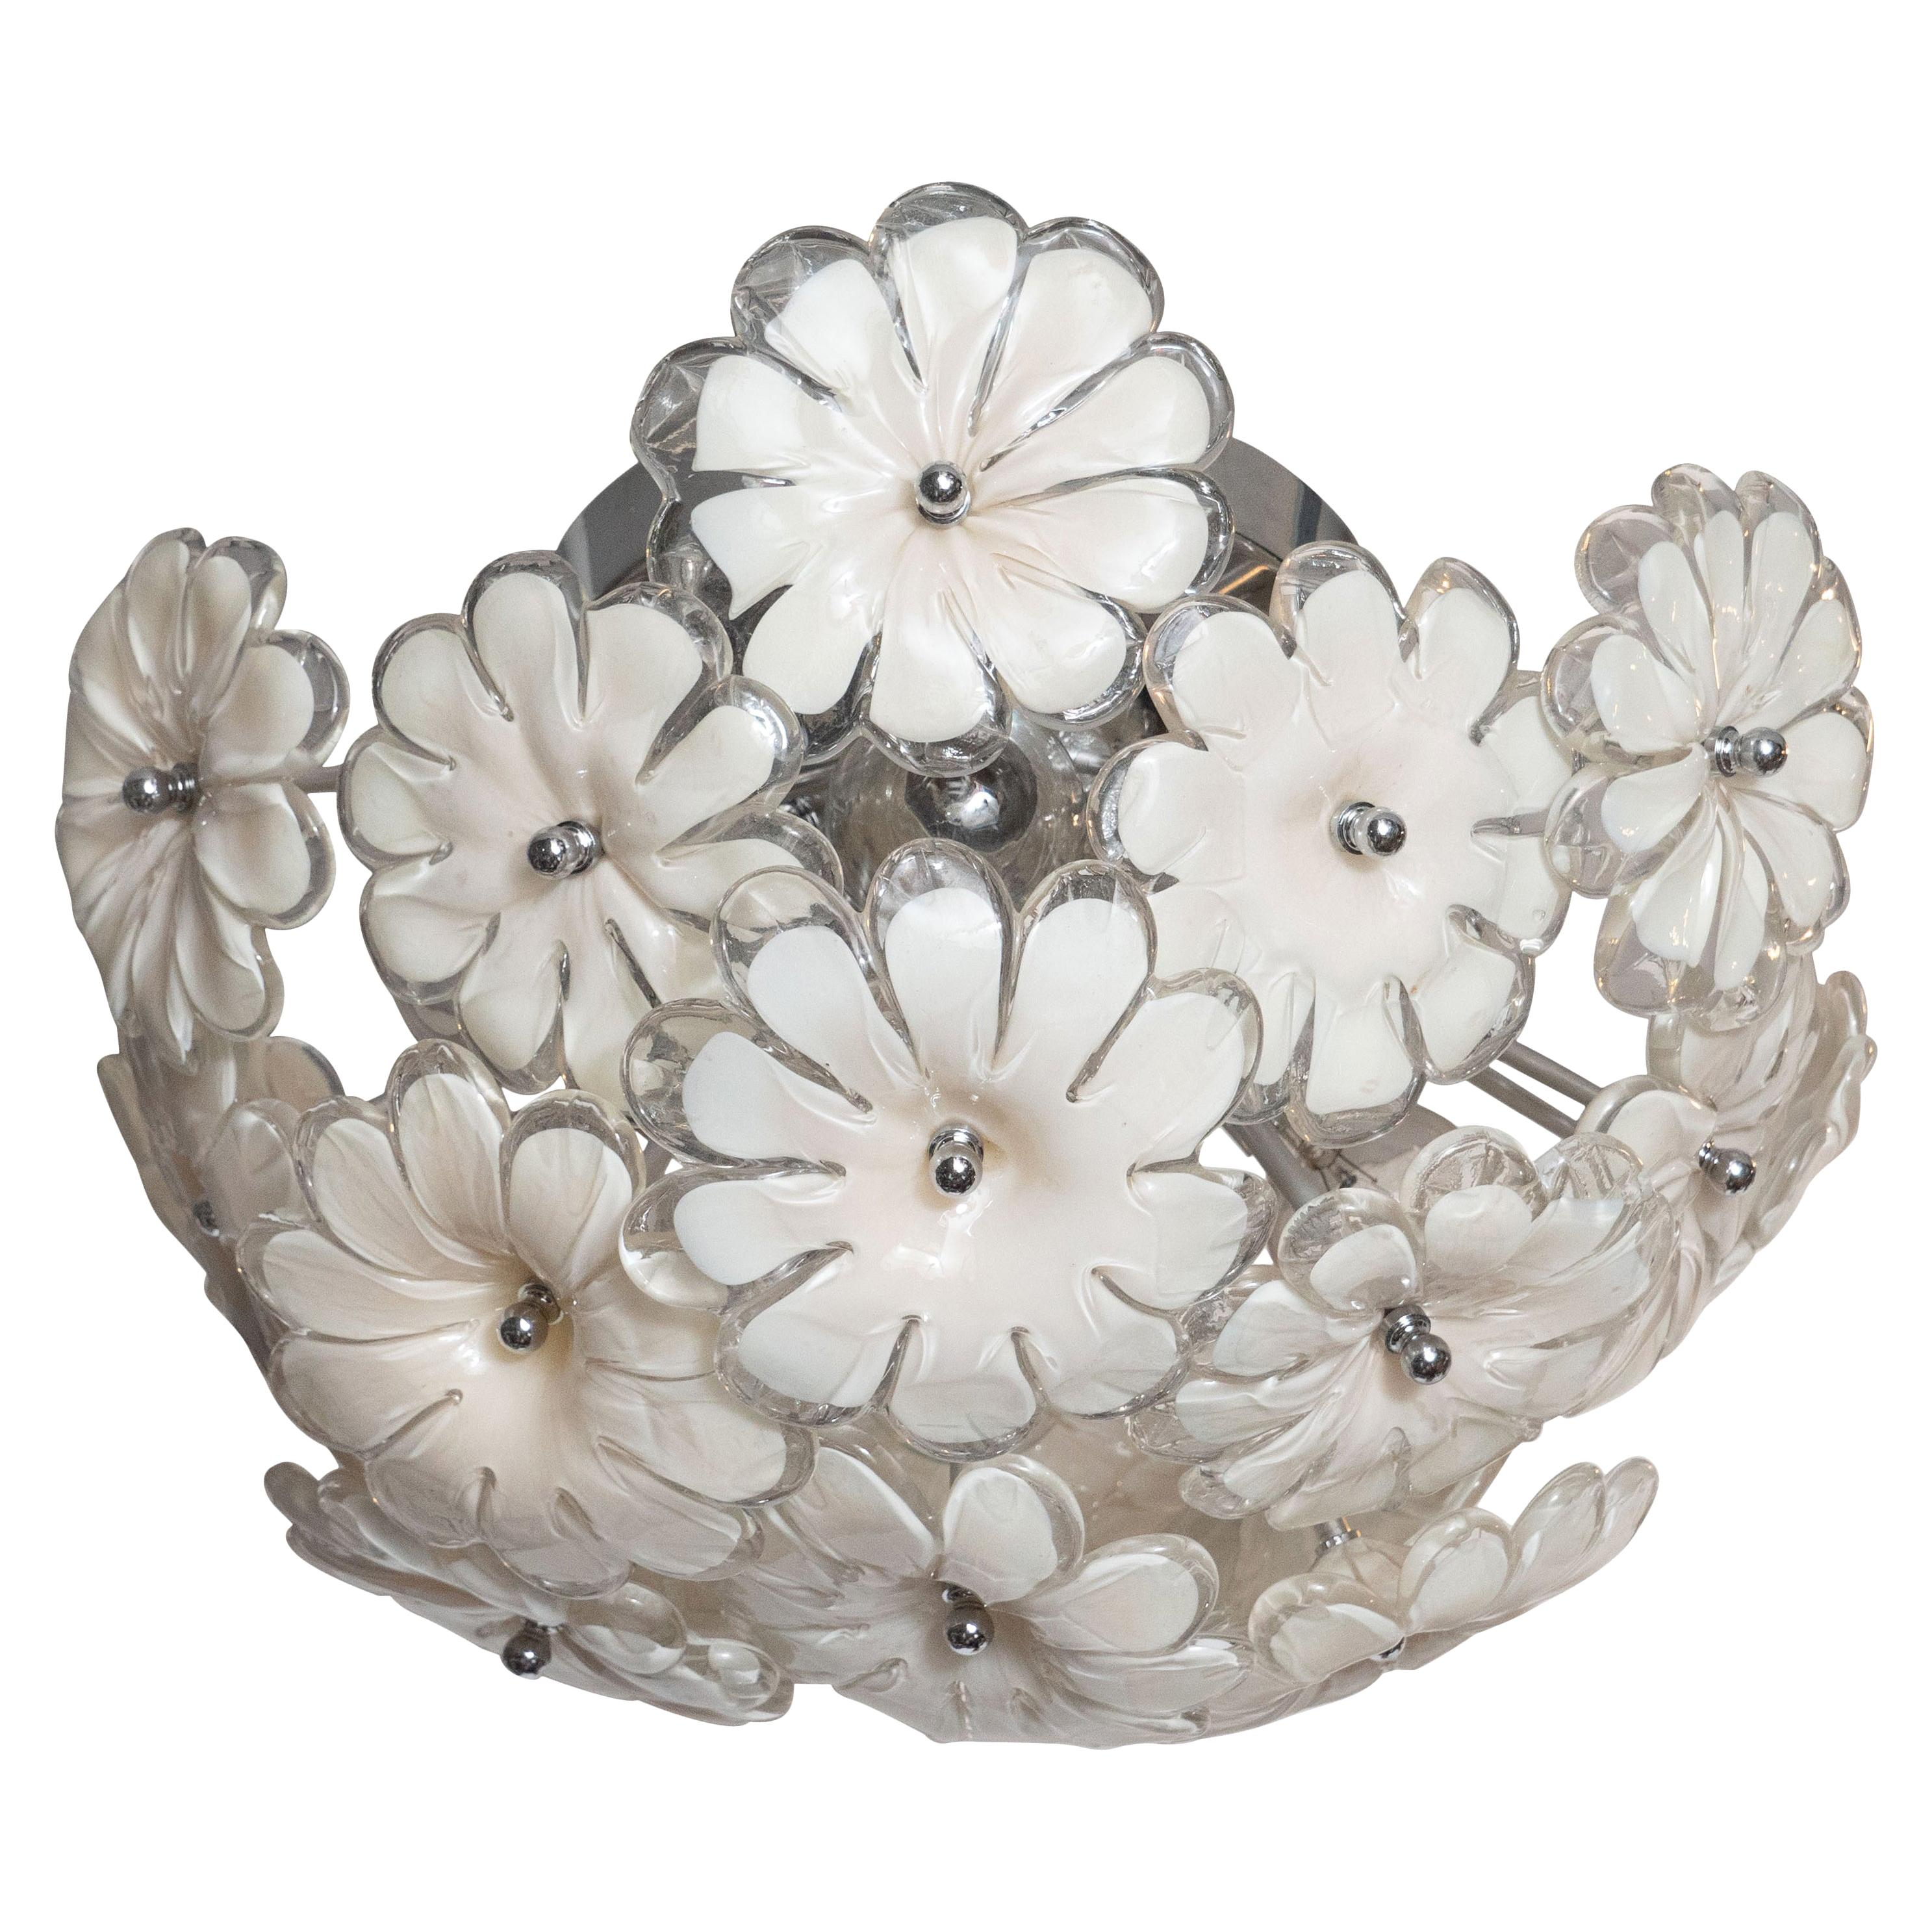 Mid-Century Modern Handblown Murano Floral Flush Mount with Chrome Fittings